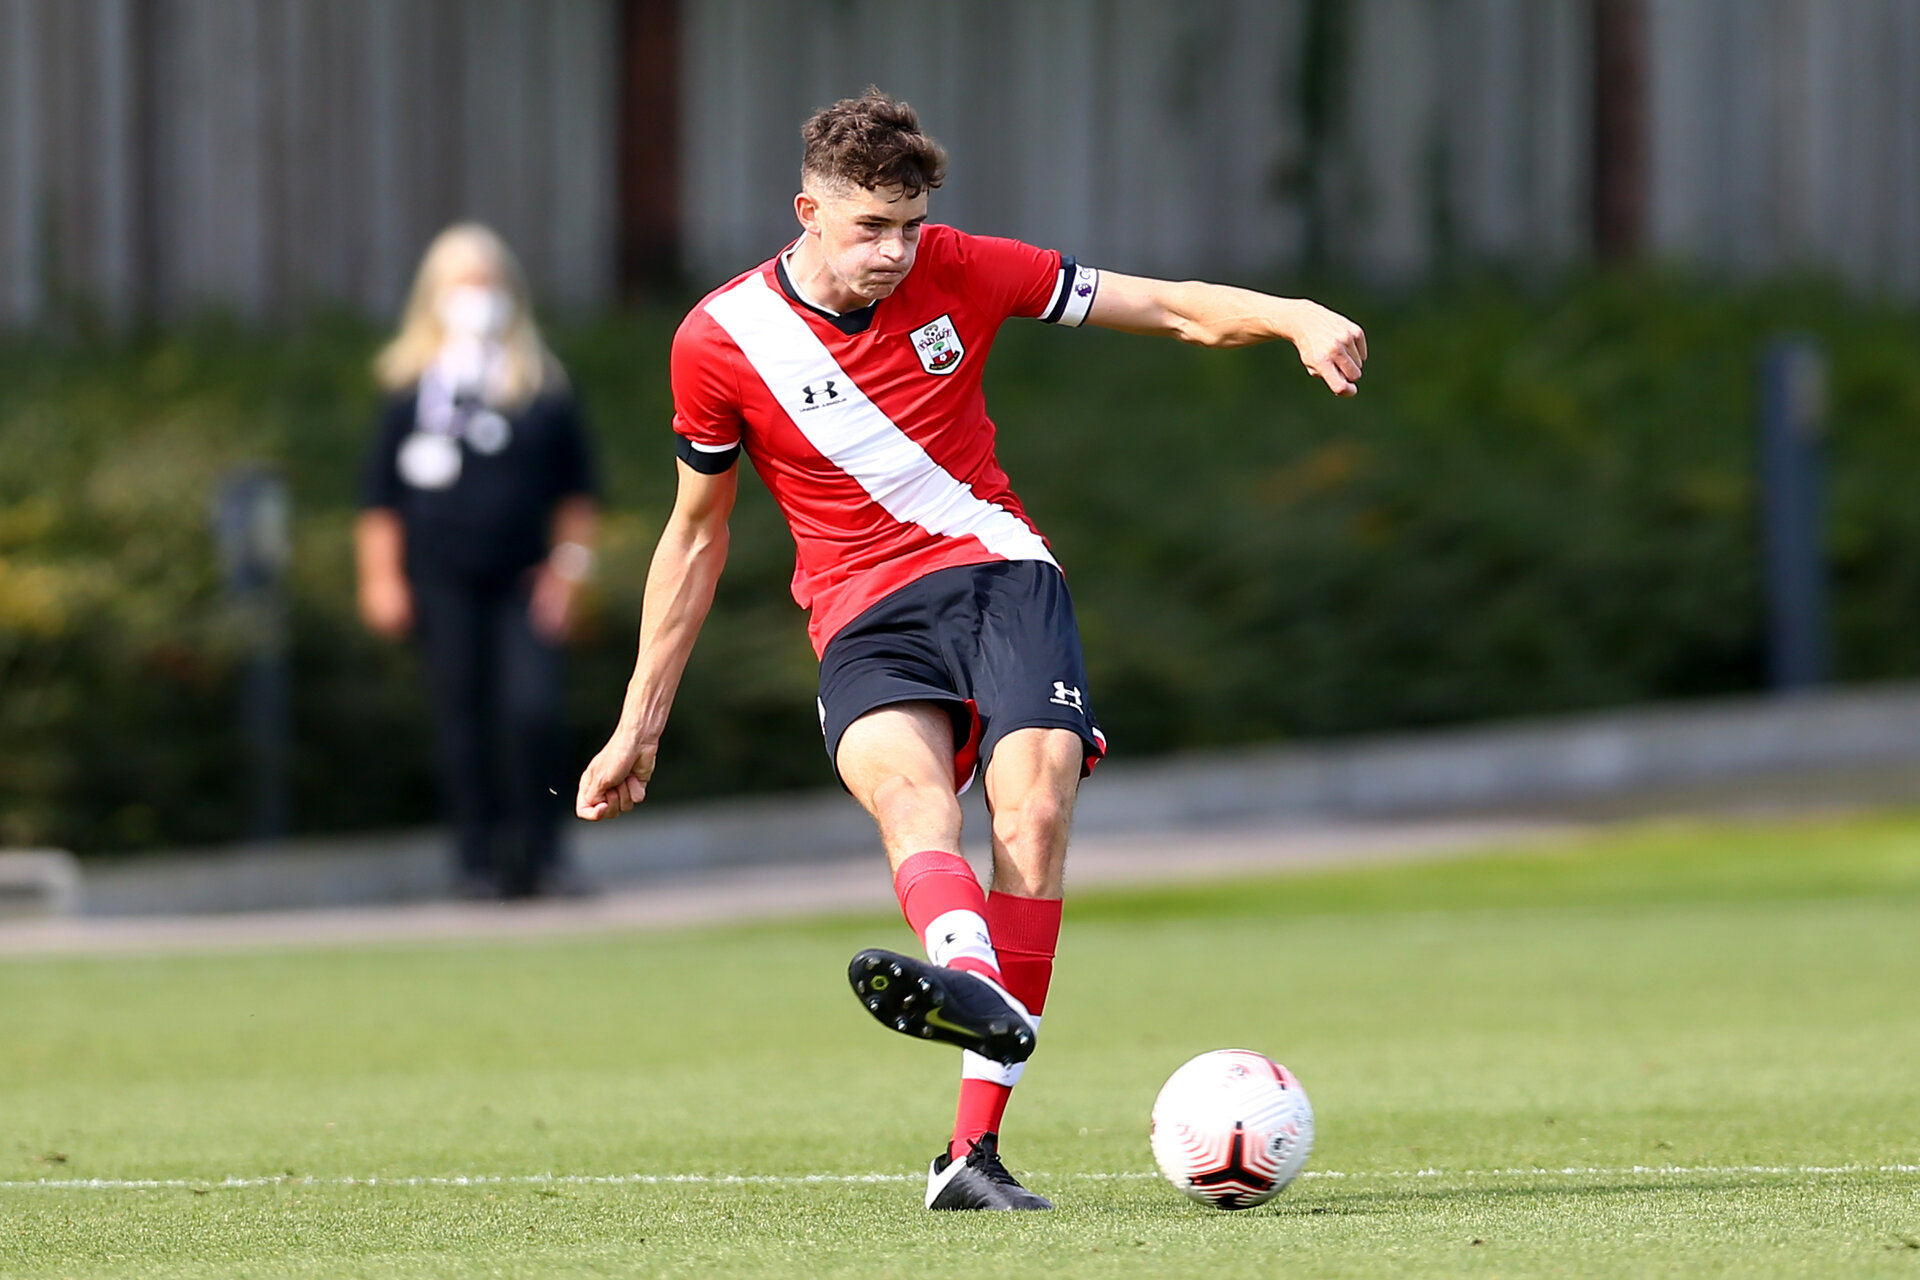 SOUTHAMPTON, ENGLAND - SEPTEMBER 19: Will Tizzard of Southampton during the Premier League U18 match between Southampton FC U18 and Crystal Palace FC at Staplewood Training Ground on September 19, 2020 in Southampton, England. (Photo by Isabelle Field/Southampton FC via Getty Images)